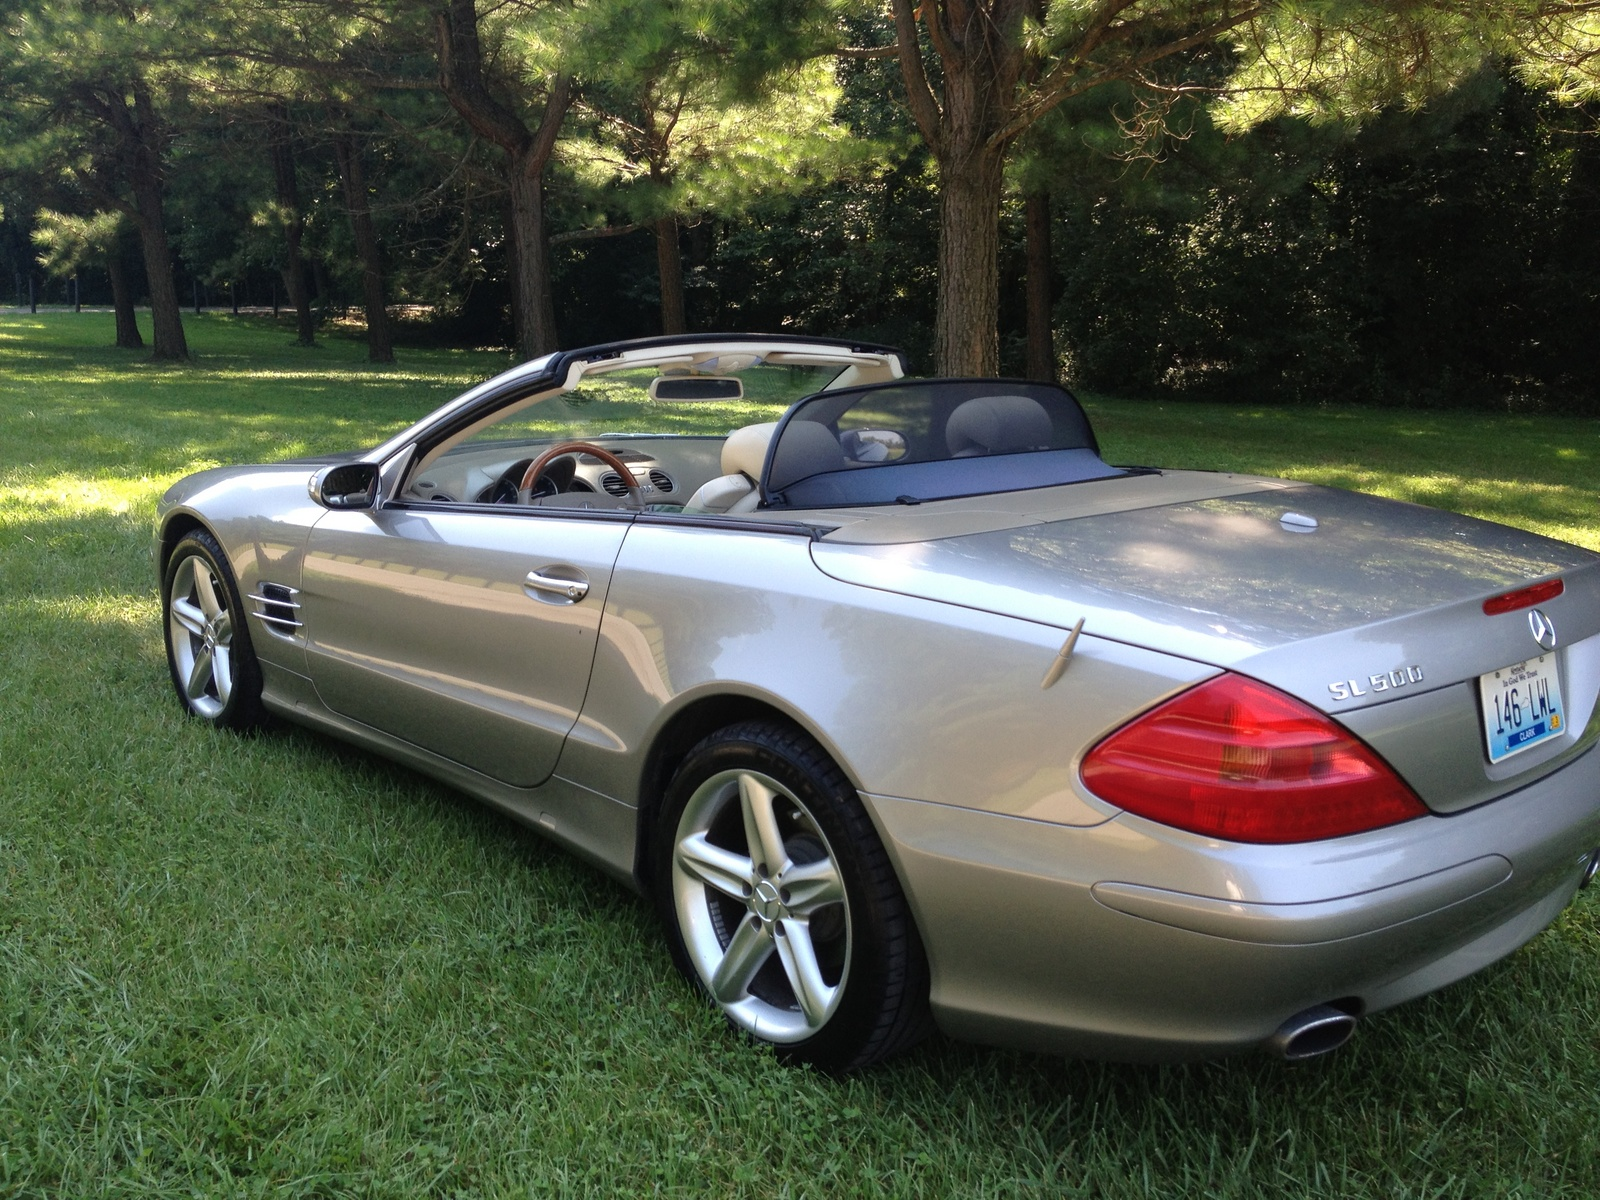 2006 mercedes benz sl class pictures cargurus for Mercedes benz sl classic